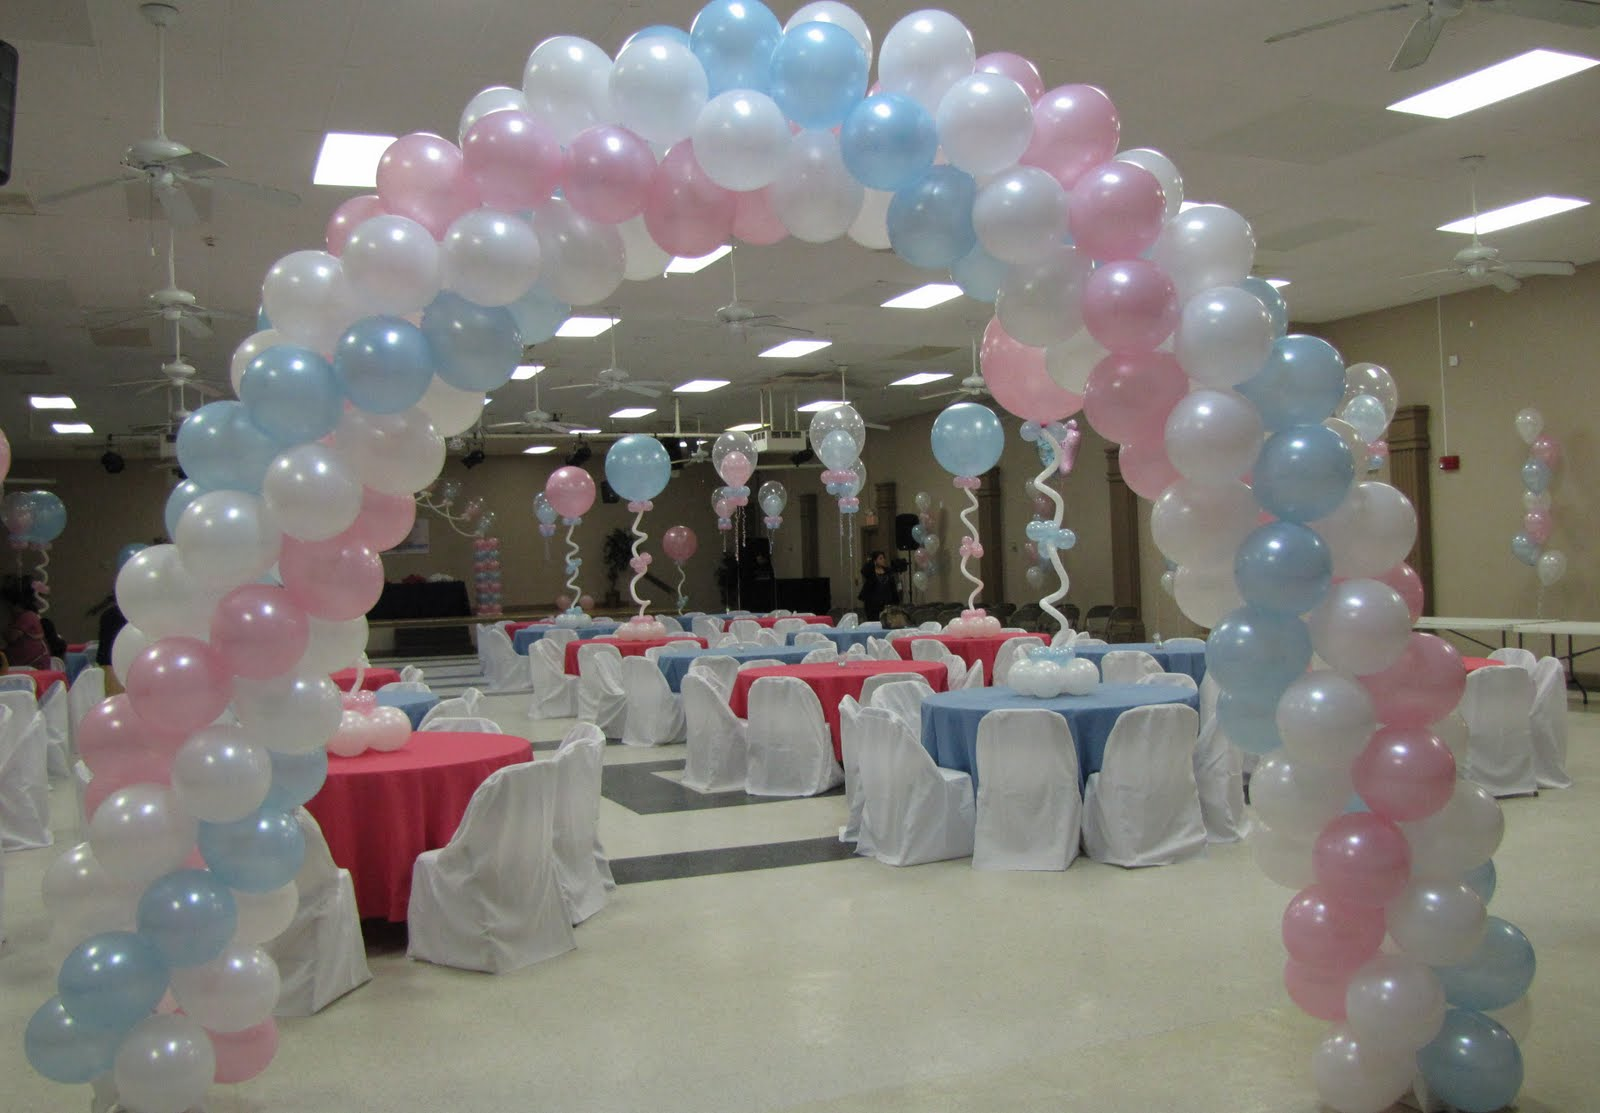 balloons decorations for baby shower party favors ideas. Black Bedroom Furniture Sets. Home Design Ideas